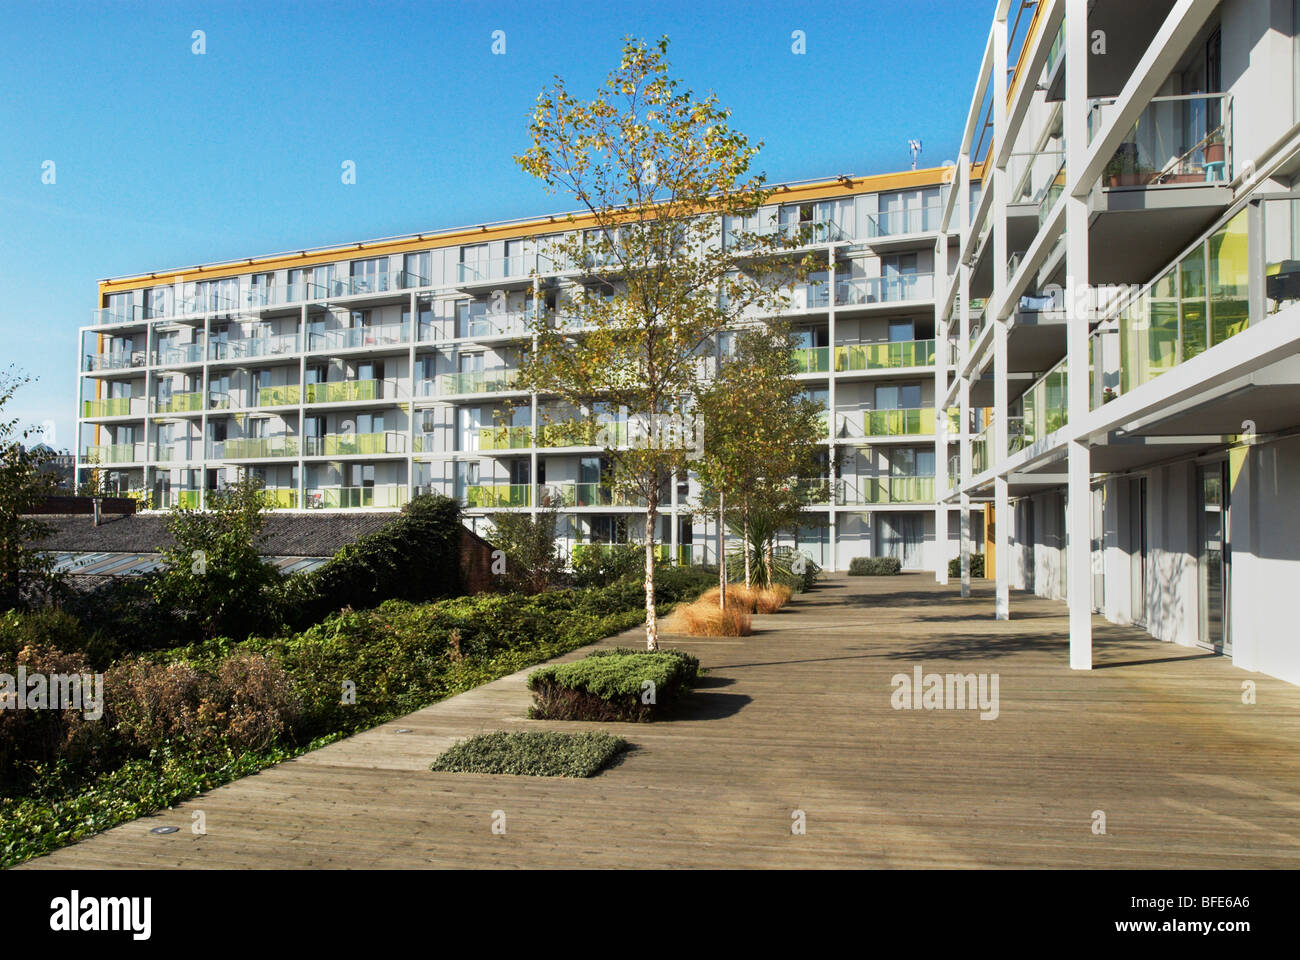 Affordable and shared-ownership housing at the New River Village development Hornsey North London UK - Stock Image